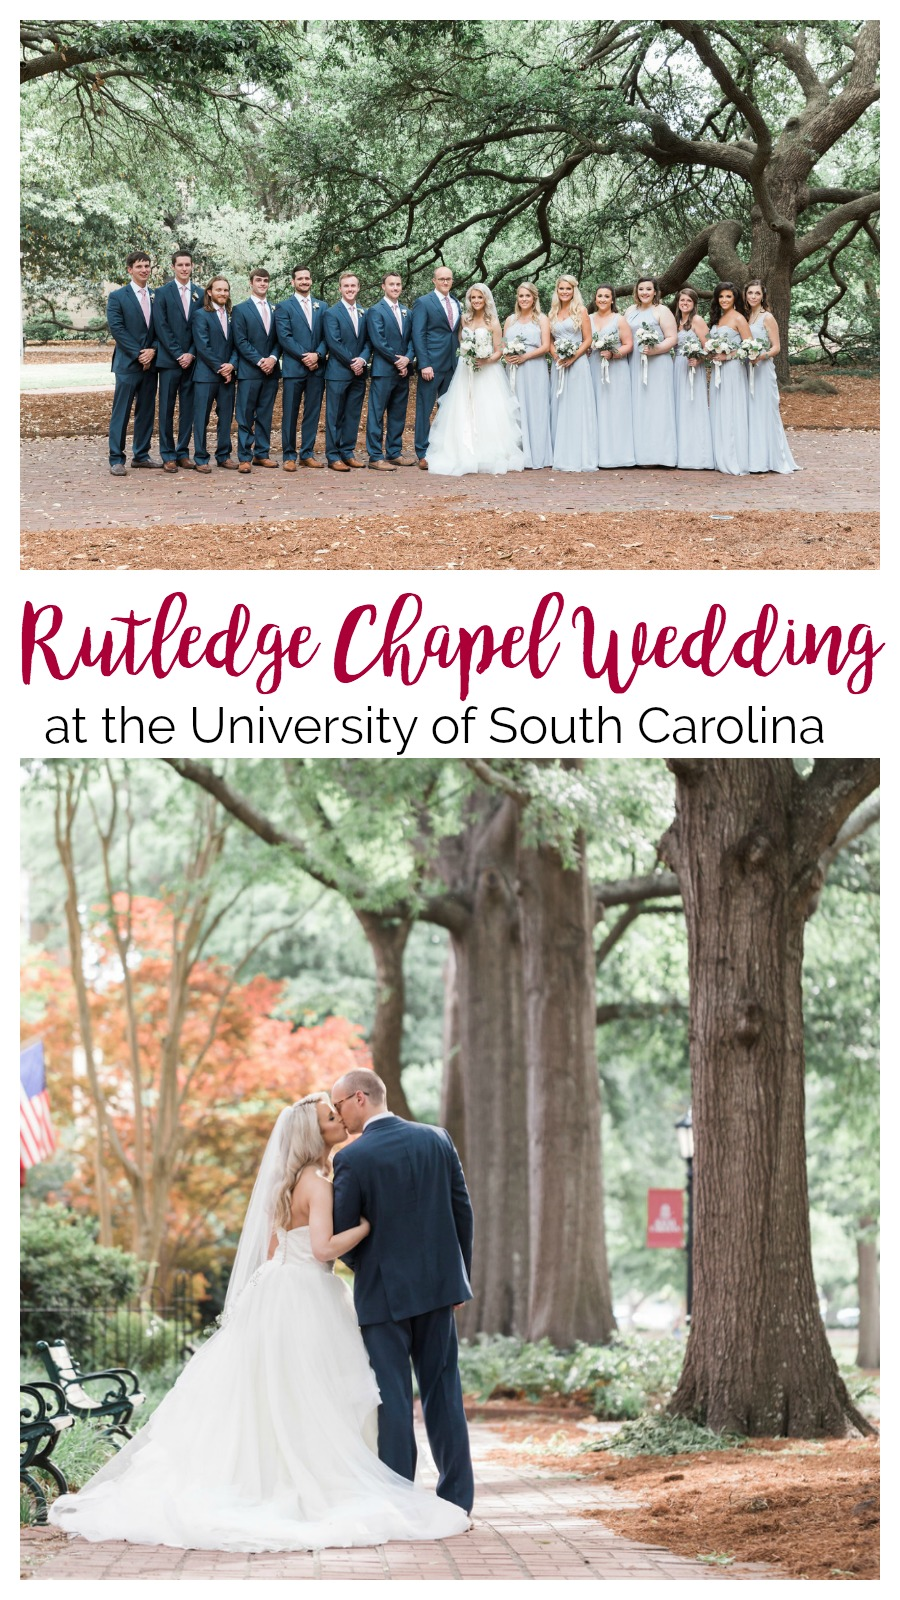 Gamble and Jordan: Rutledge Chapel Wedding at the University of South Carolina | Palmetto State Weddings | Megan Manus Photography | University of South Carolina wedding | college university wedding | Columbia SC wedding